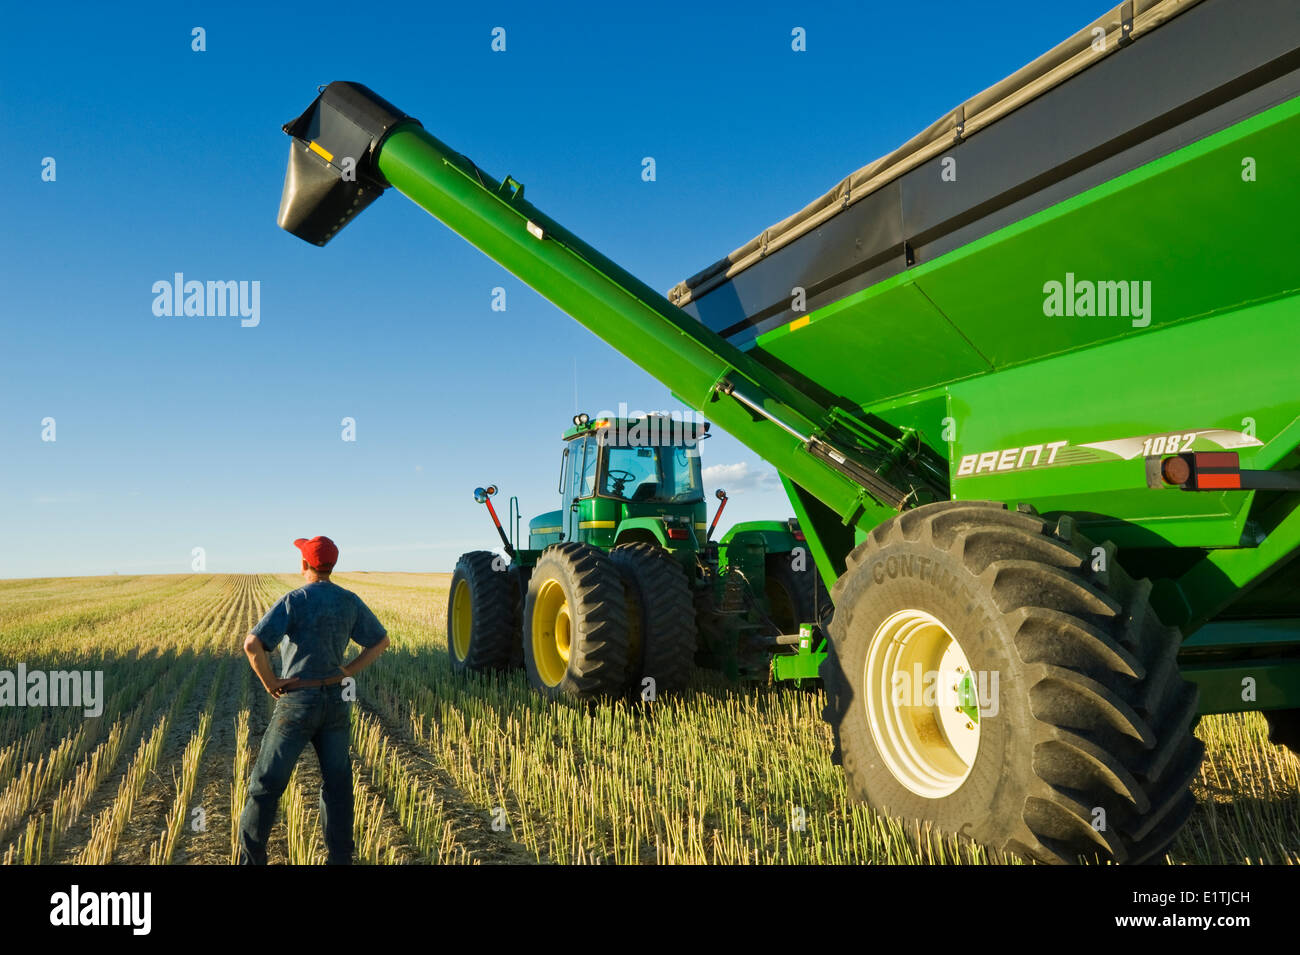 a man next to a tractor and grain wagon during the canola harvest, near Hodgeville, Saskatchewan, Canada - Stock Image